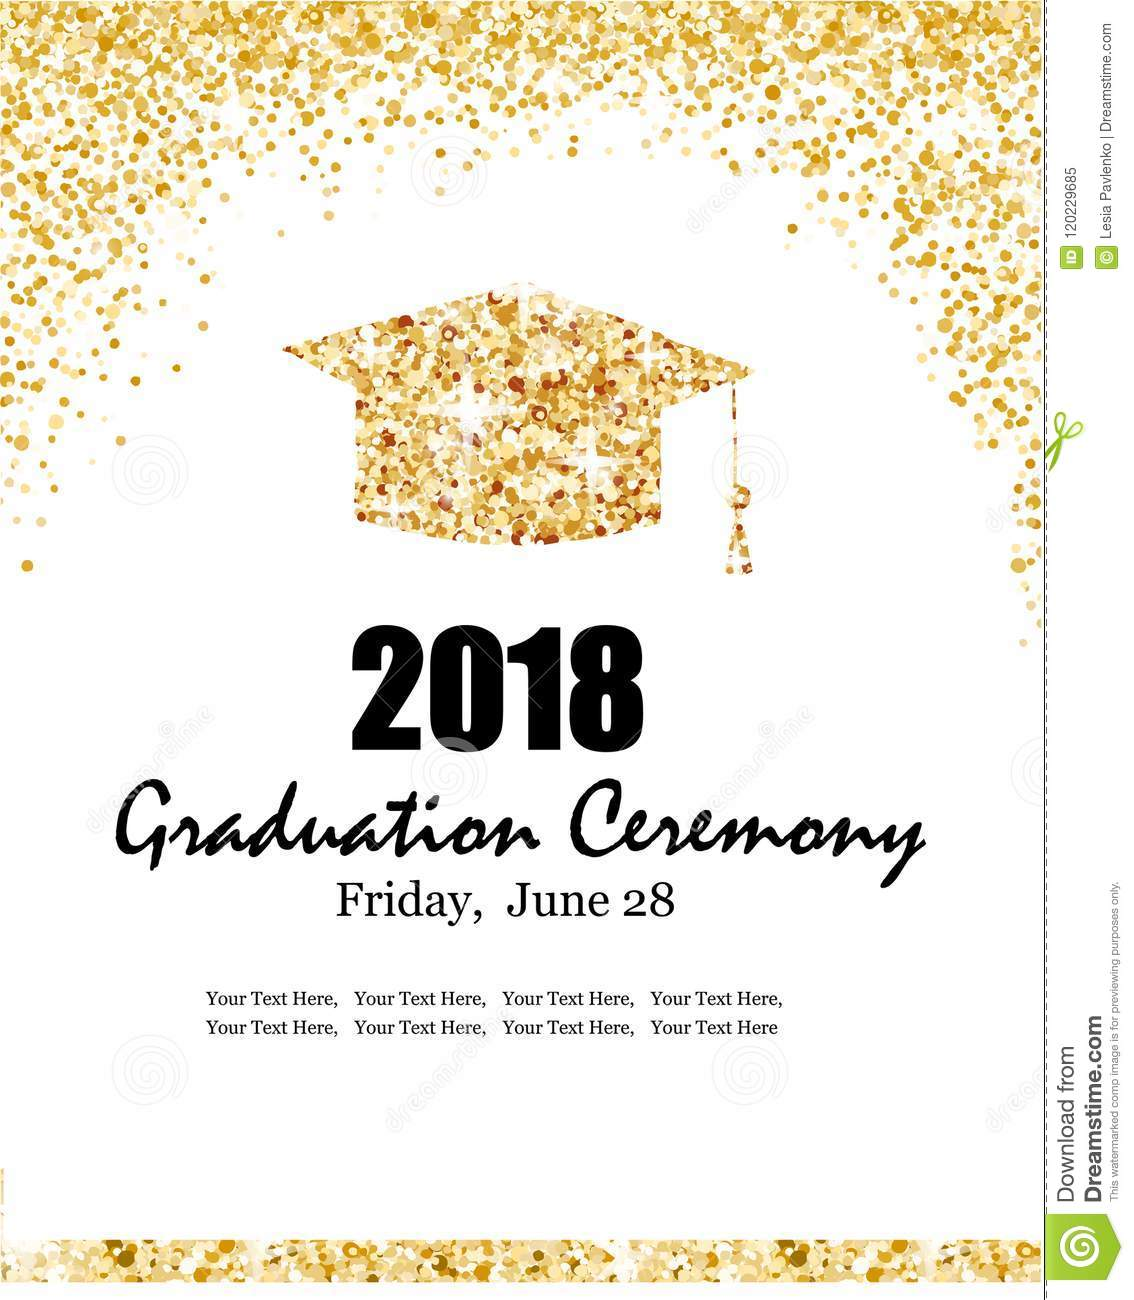 Class Of 2018 Graduation Ceremony Banner With Graduate Hat And Gold Confetti Background For Invitation Poster Postcard Vector Template